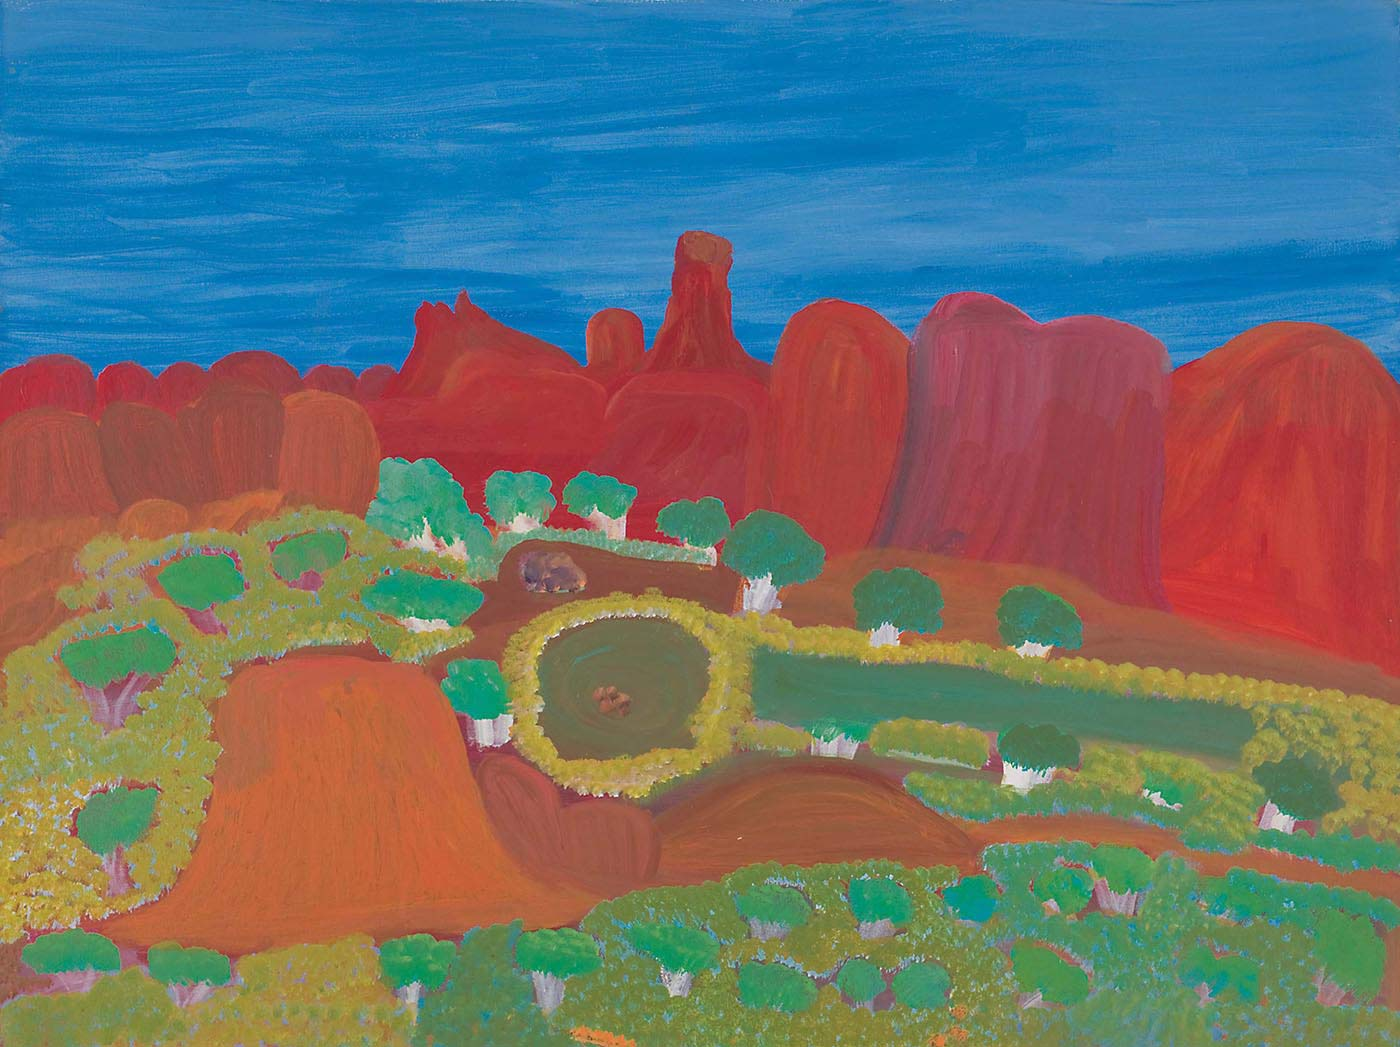 A painting on canvas with a range of orange-red rock formations, including a taller one with a squared top in the centre, against a blue sky in the top section. In the mid ground there are green trees with white trunks and foliage around a circle and rectangle of dark green. In the foreground there is foliage and red ground including an orange red rock-like feature to the left of the painting. - click to view larger image